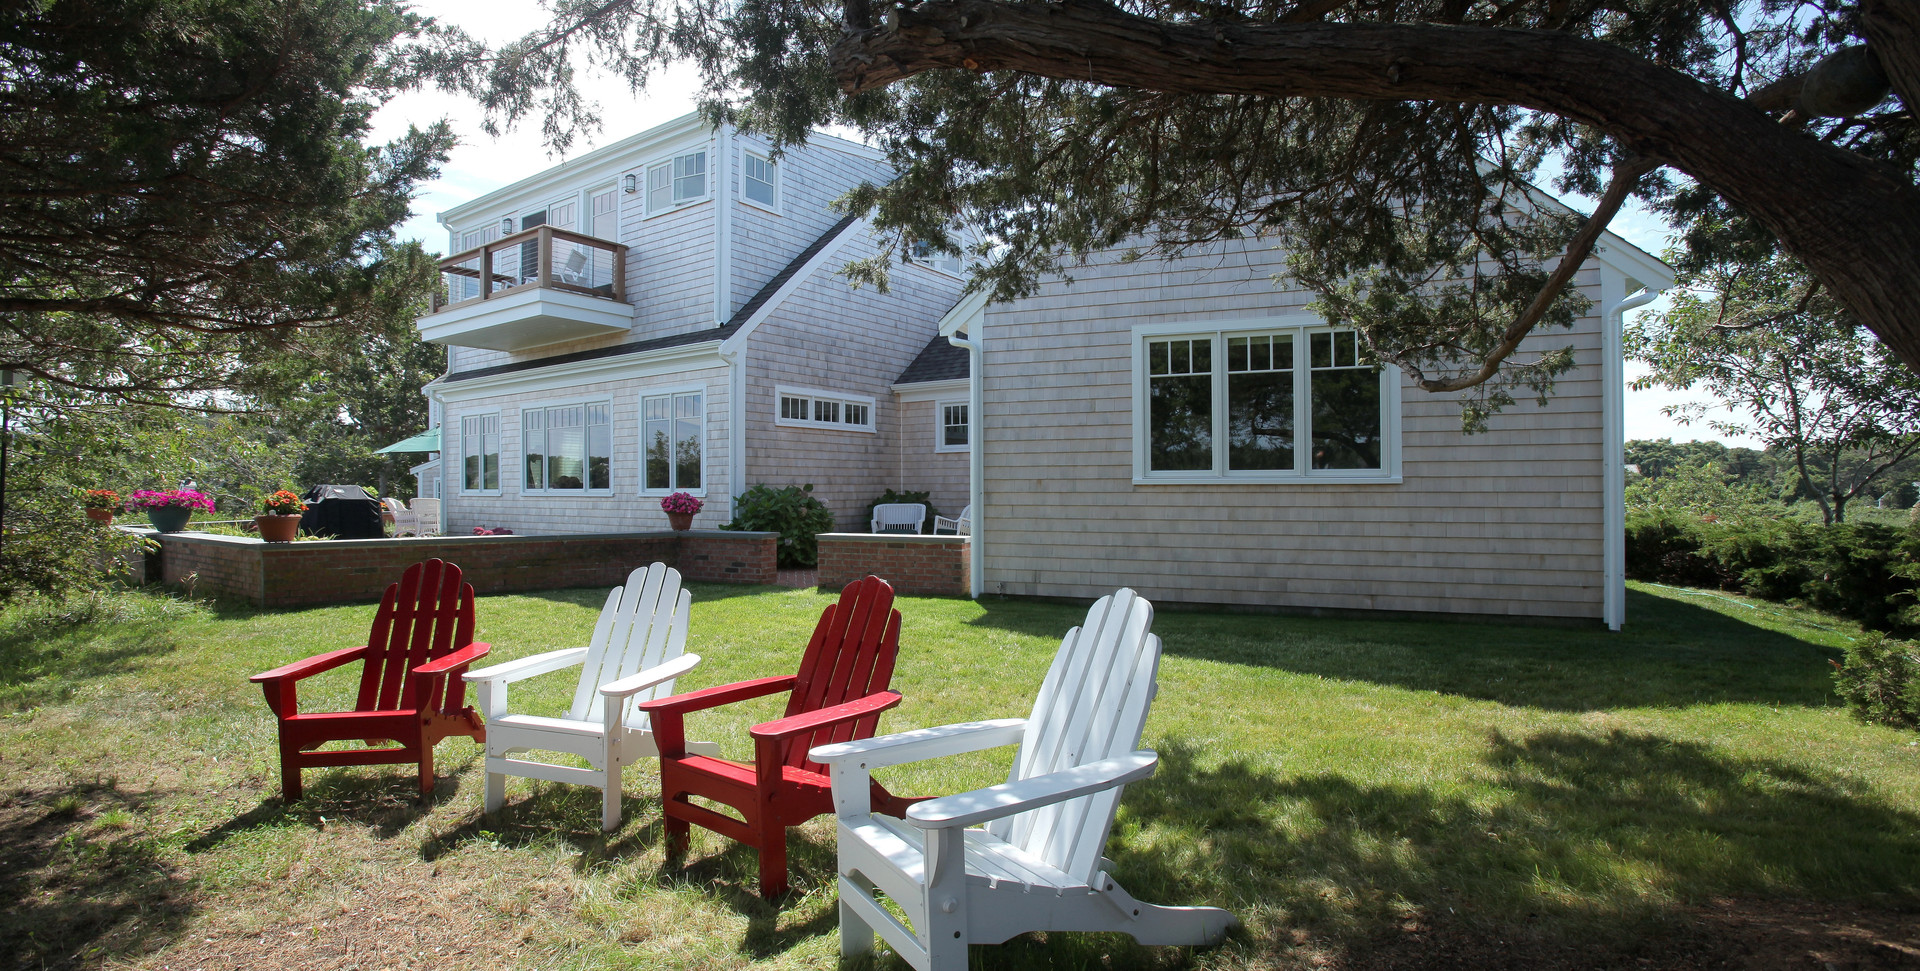 Ryders Cove, North Chatham Cape Cod Home Renovation, Outdoor living on Cape Cod